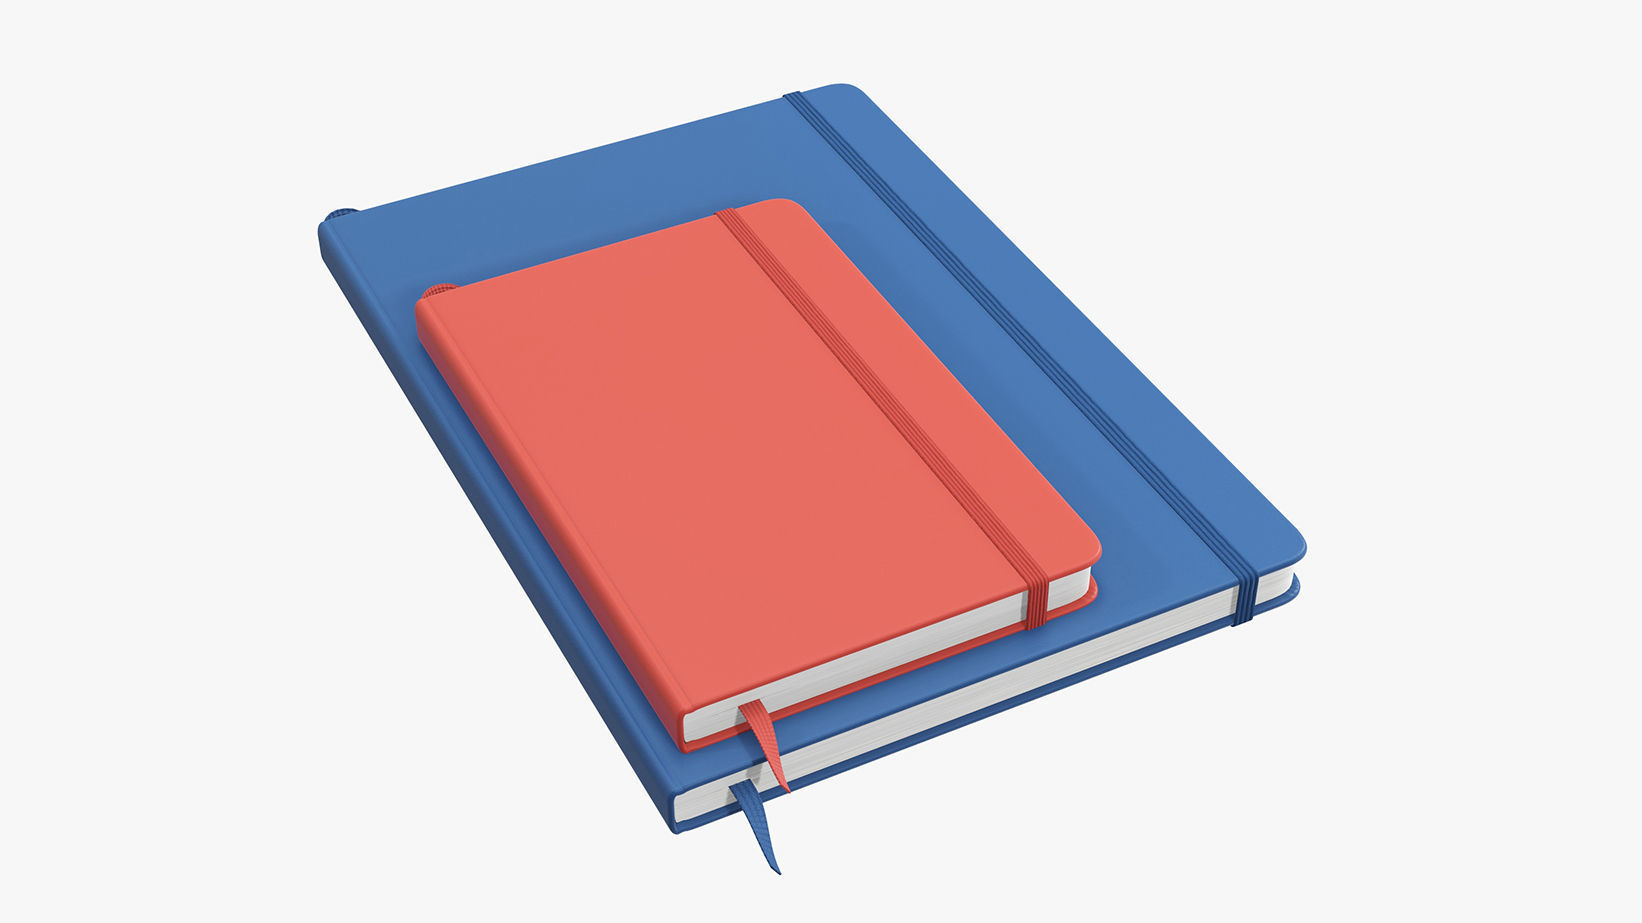 Notebooks hardcover with strap